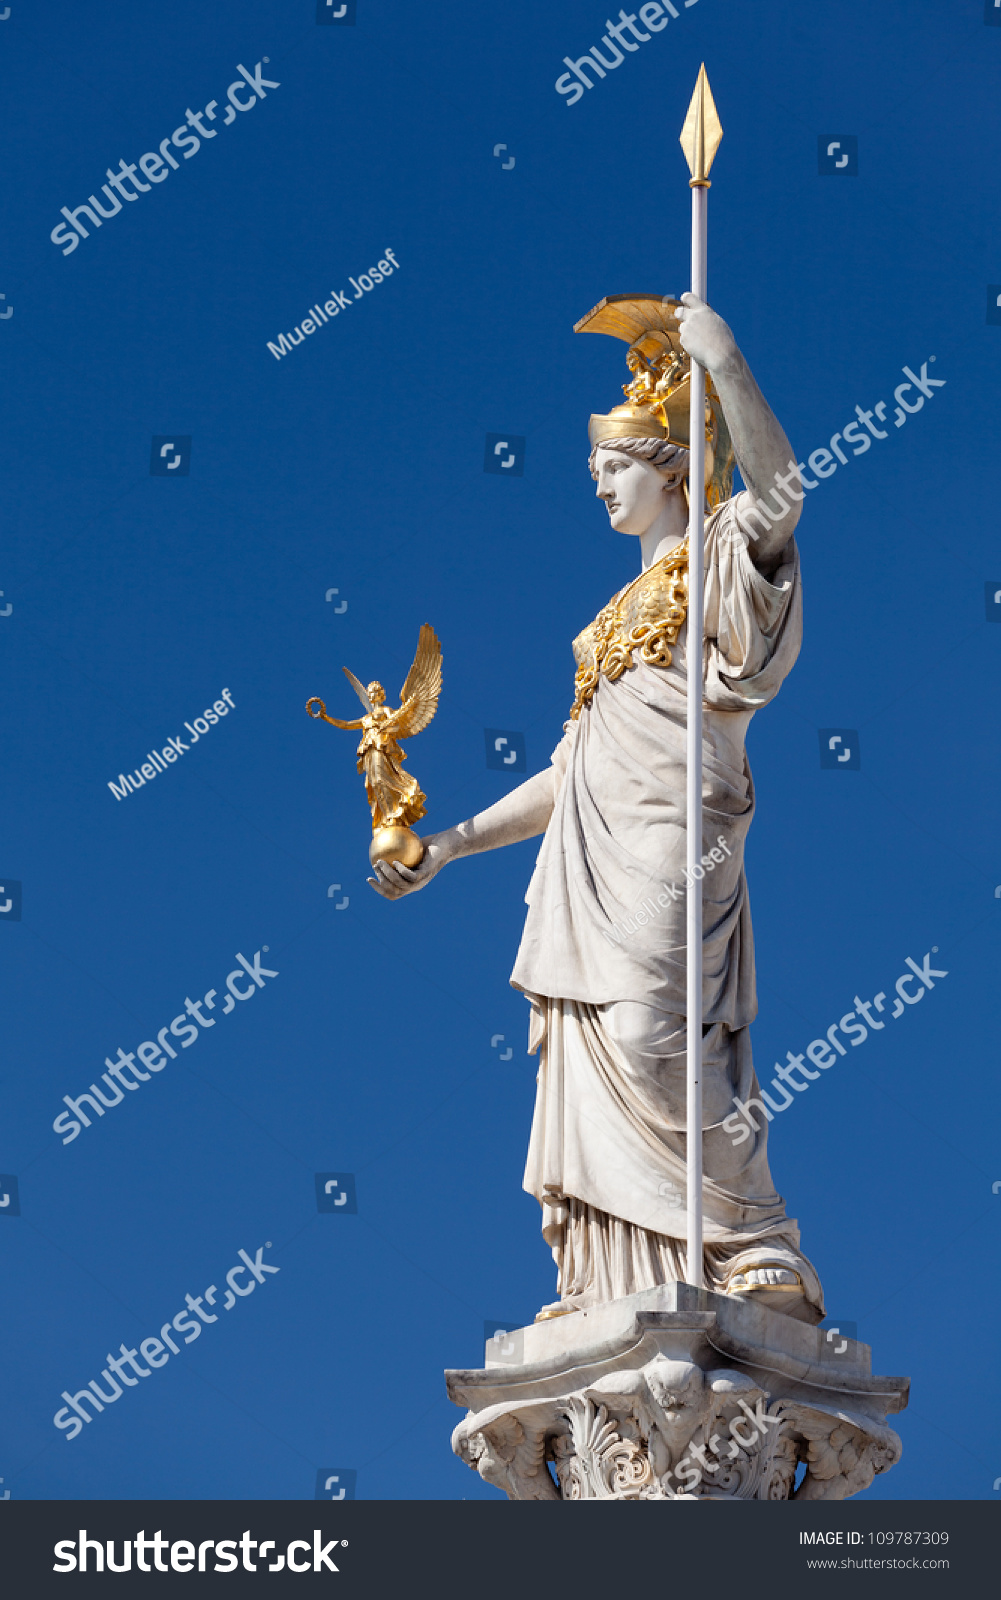 Athena Goddess Greek Mythology Symbol Law Stock Photo Edit Now